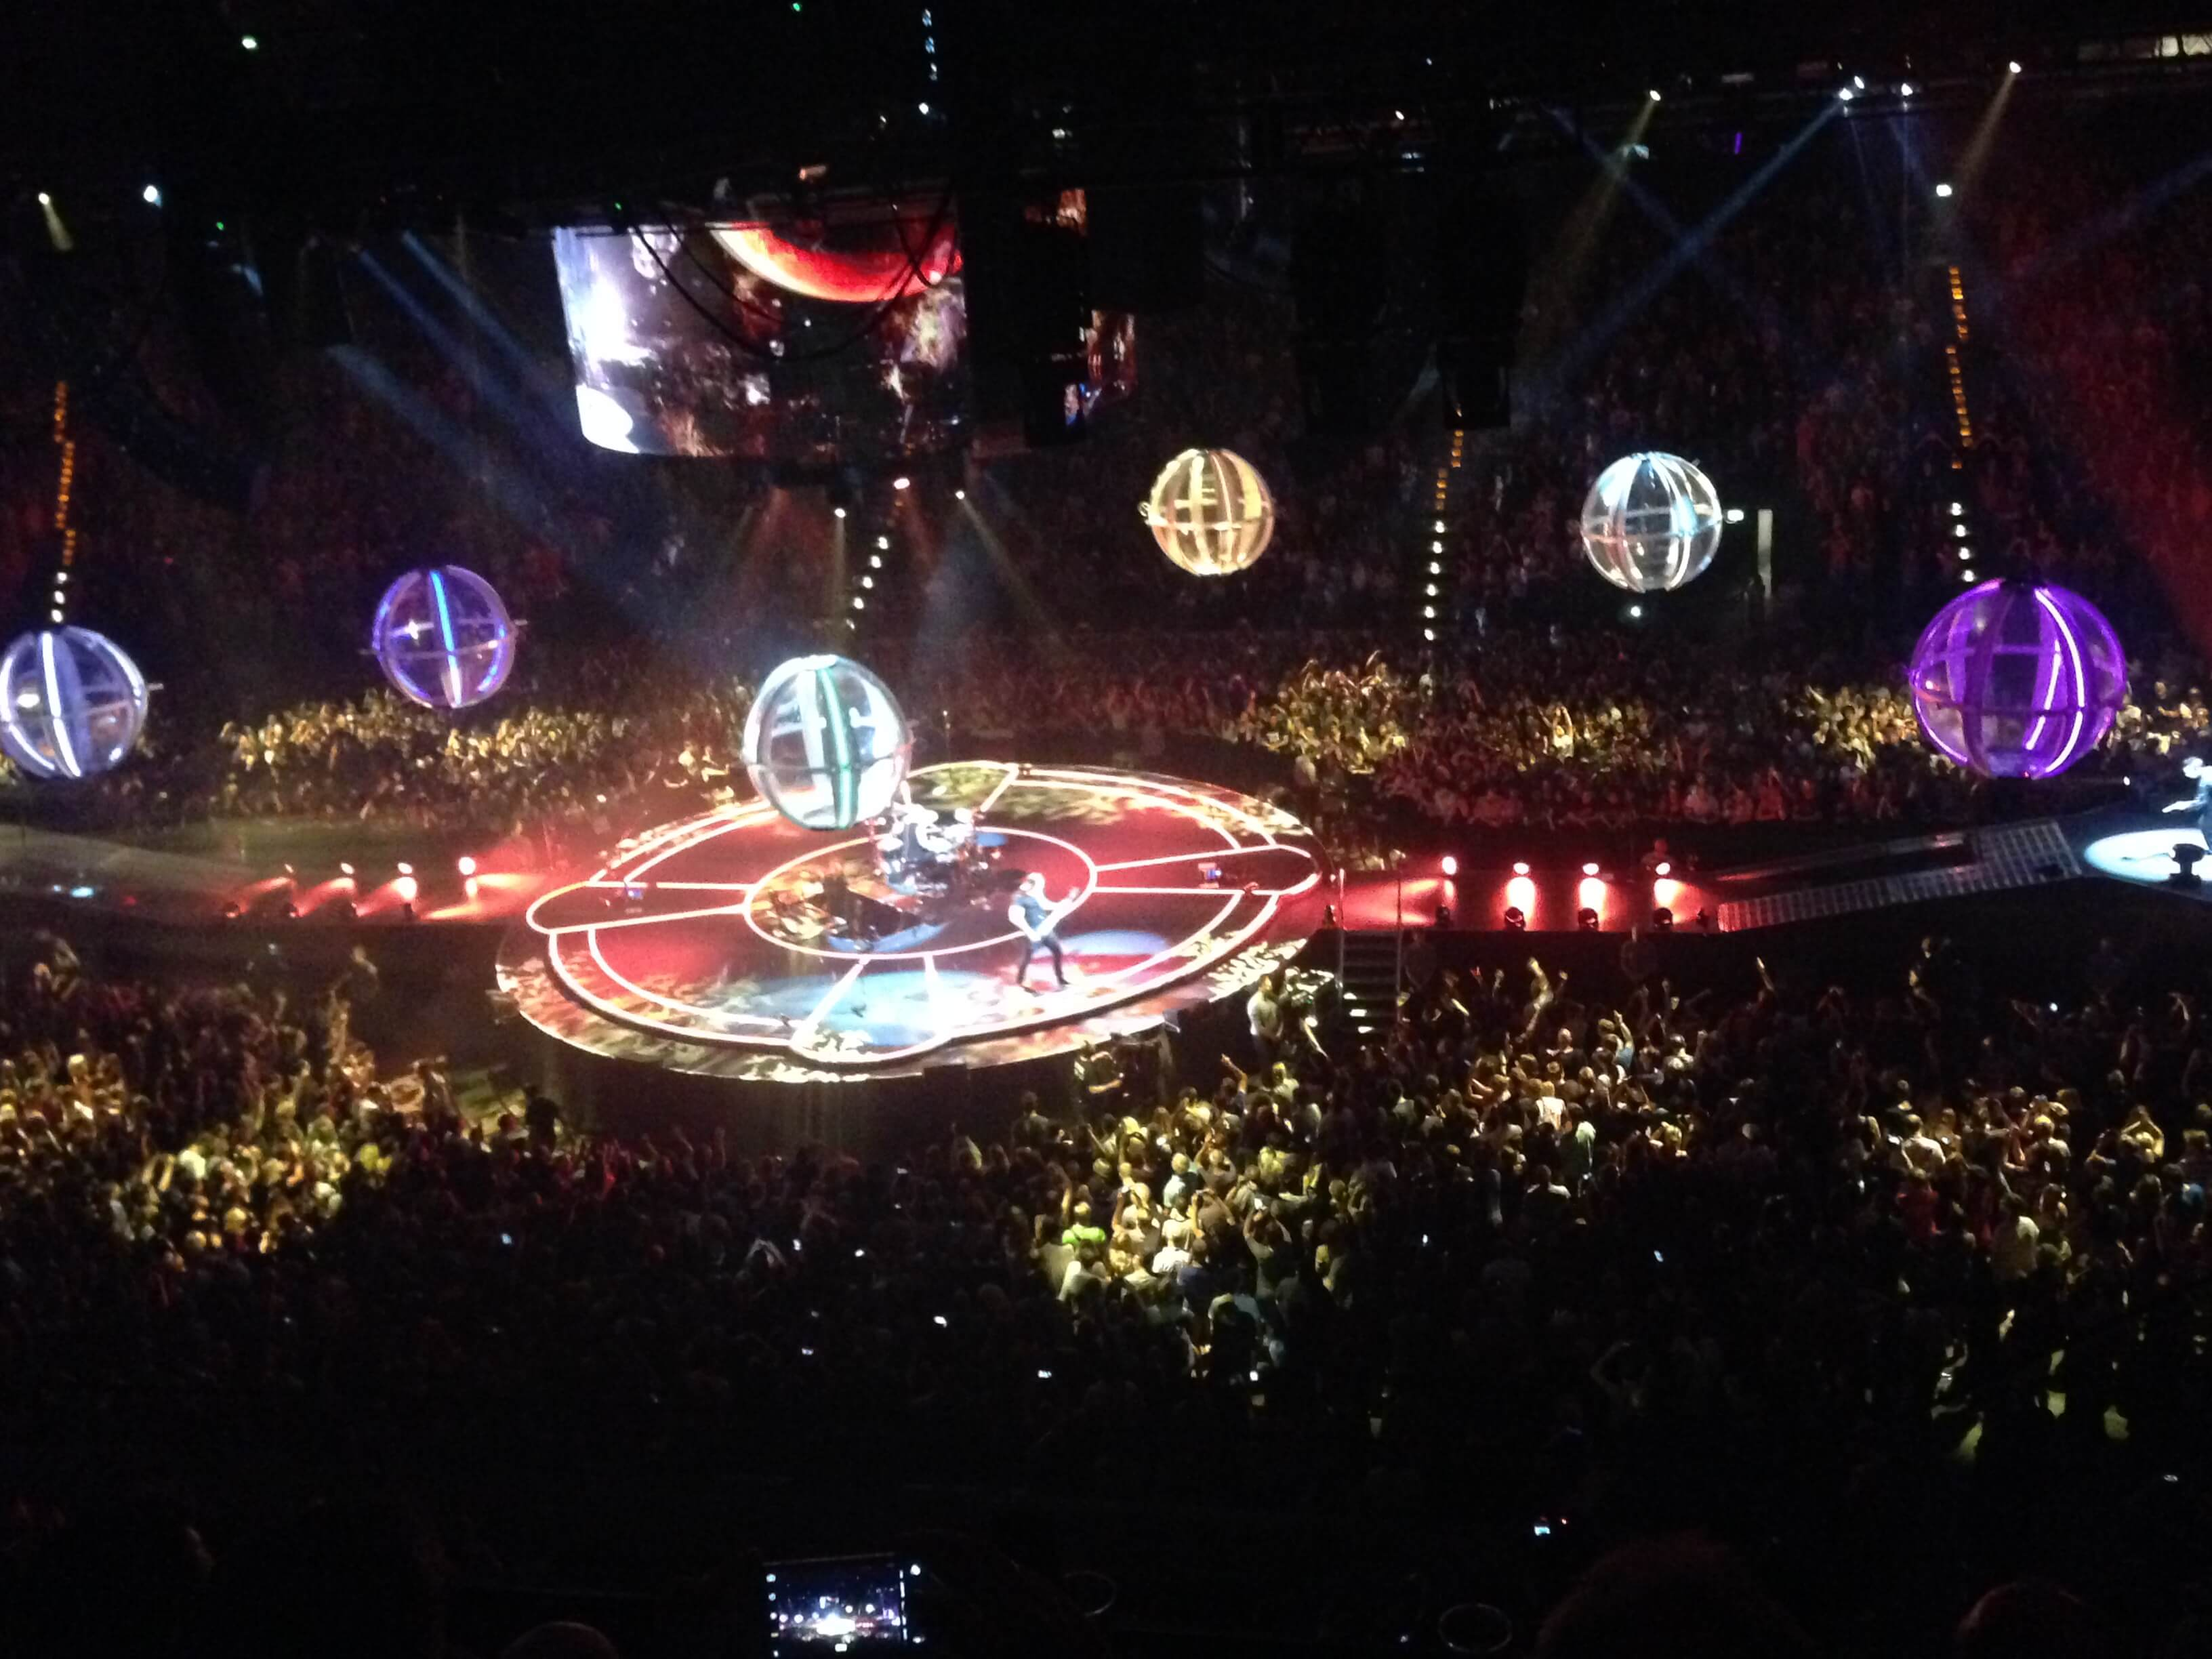 Muse performen Supermassiv Black Hole